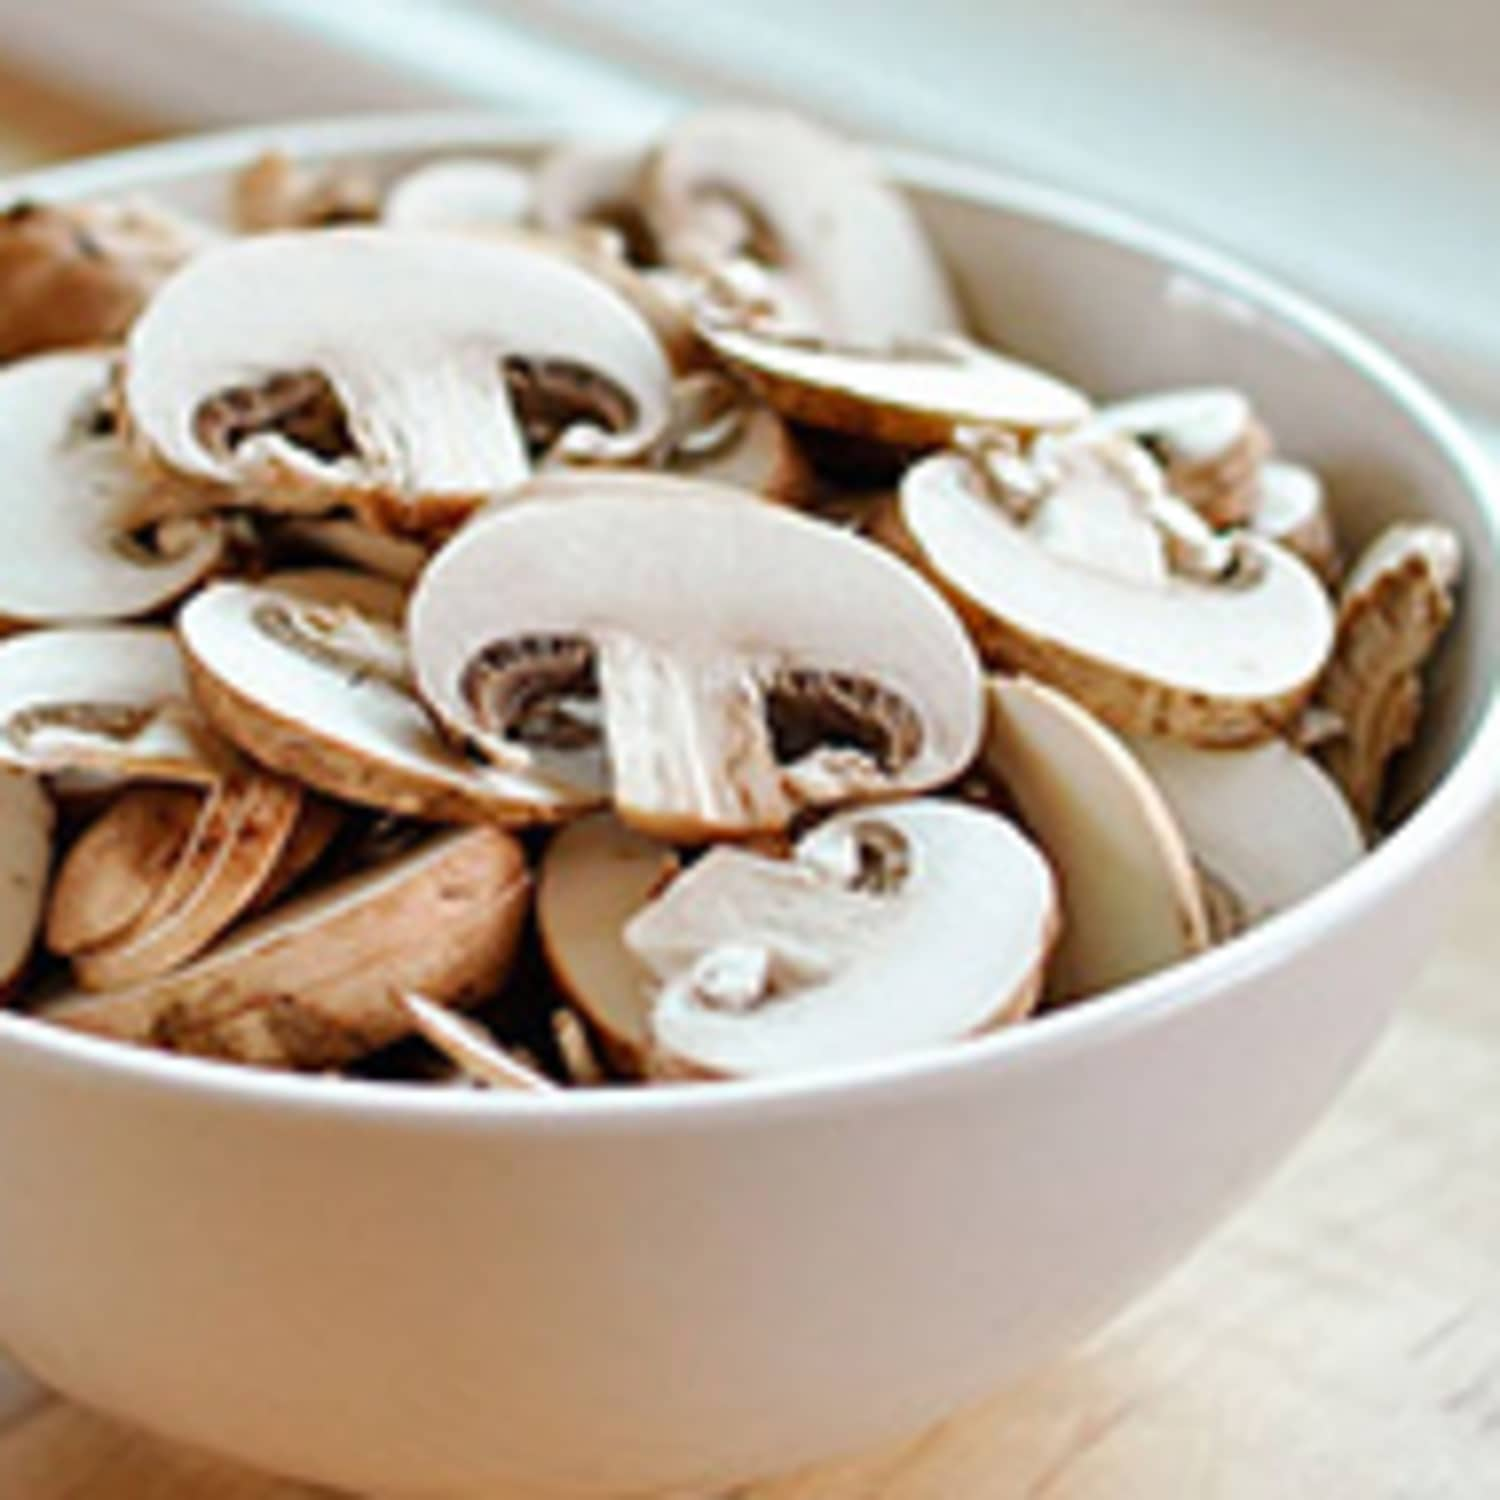 What Is a Good Substitute for Mushrooms? | Kitchn